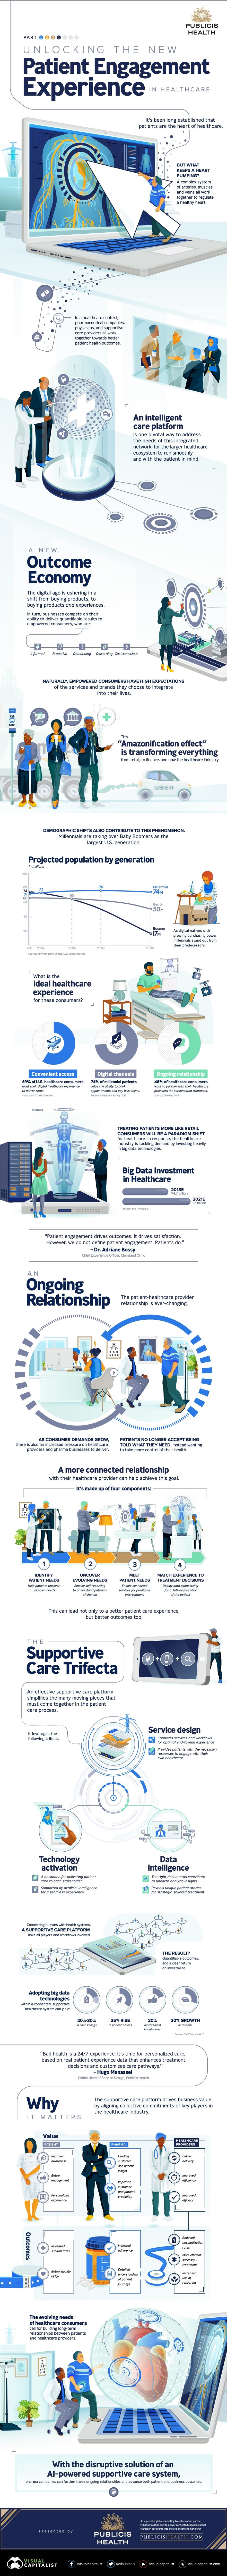 THE AMAZONIFICATION OF HEALTHCARE #INFOGRAPHIC